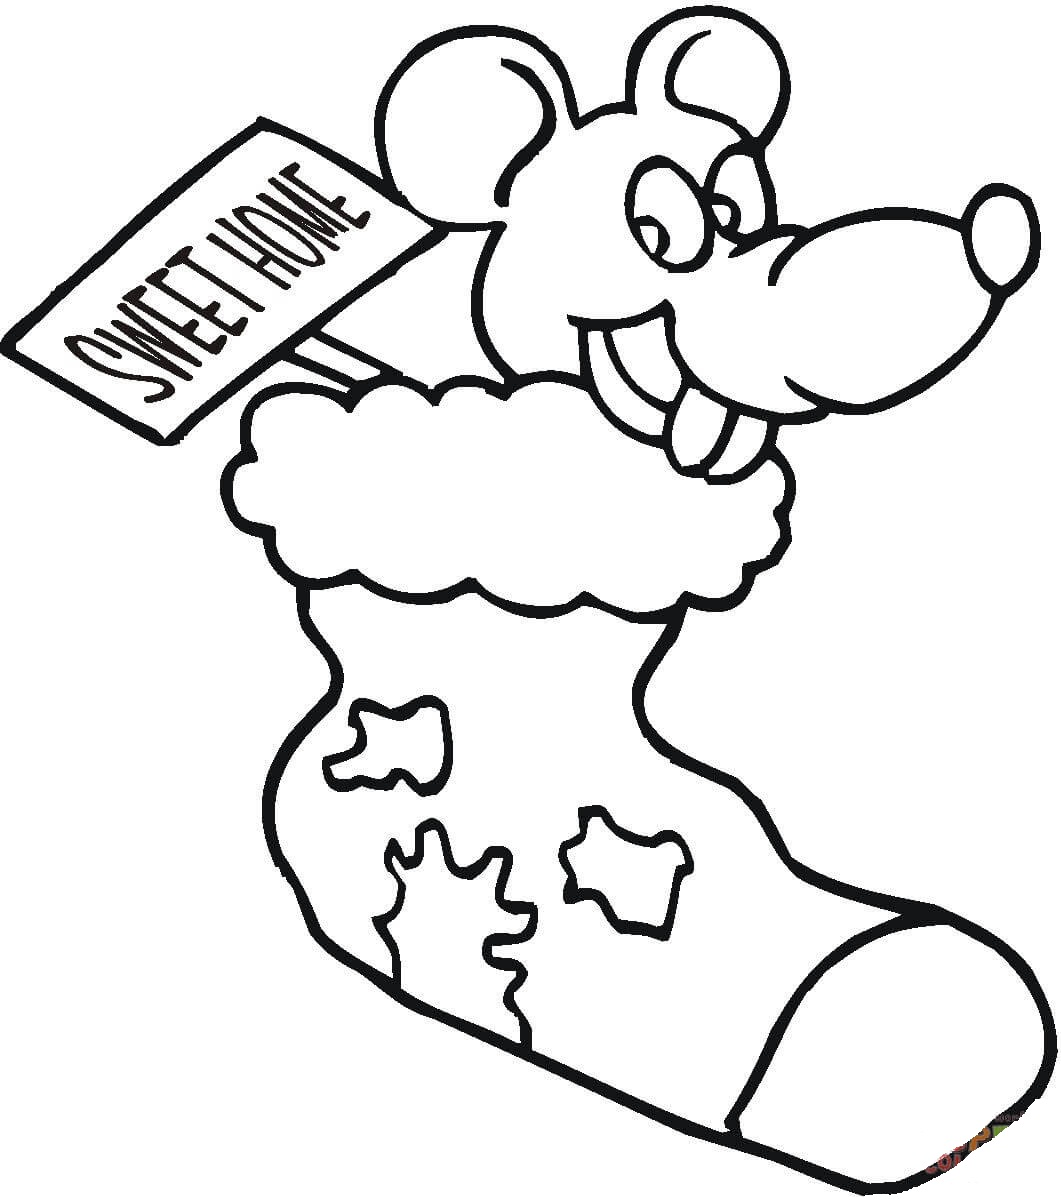 A Mouse in a Stock Coloring Page